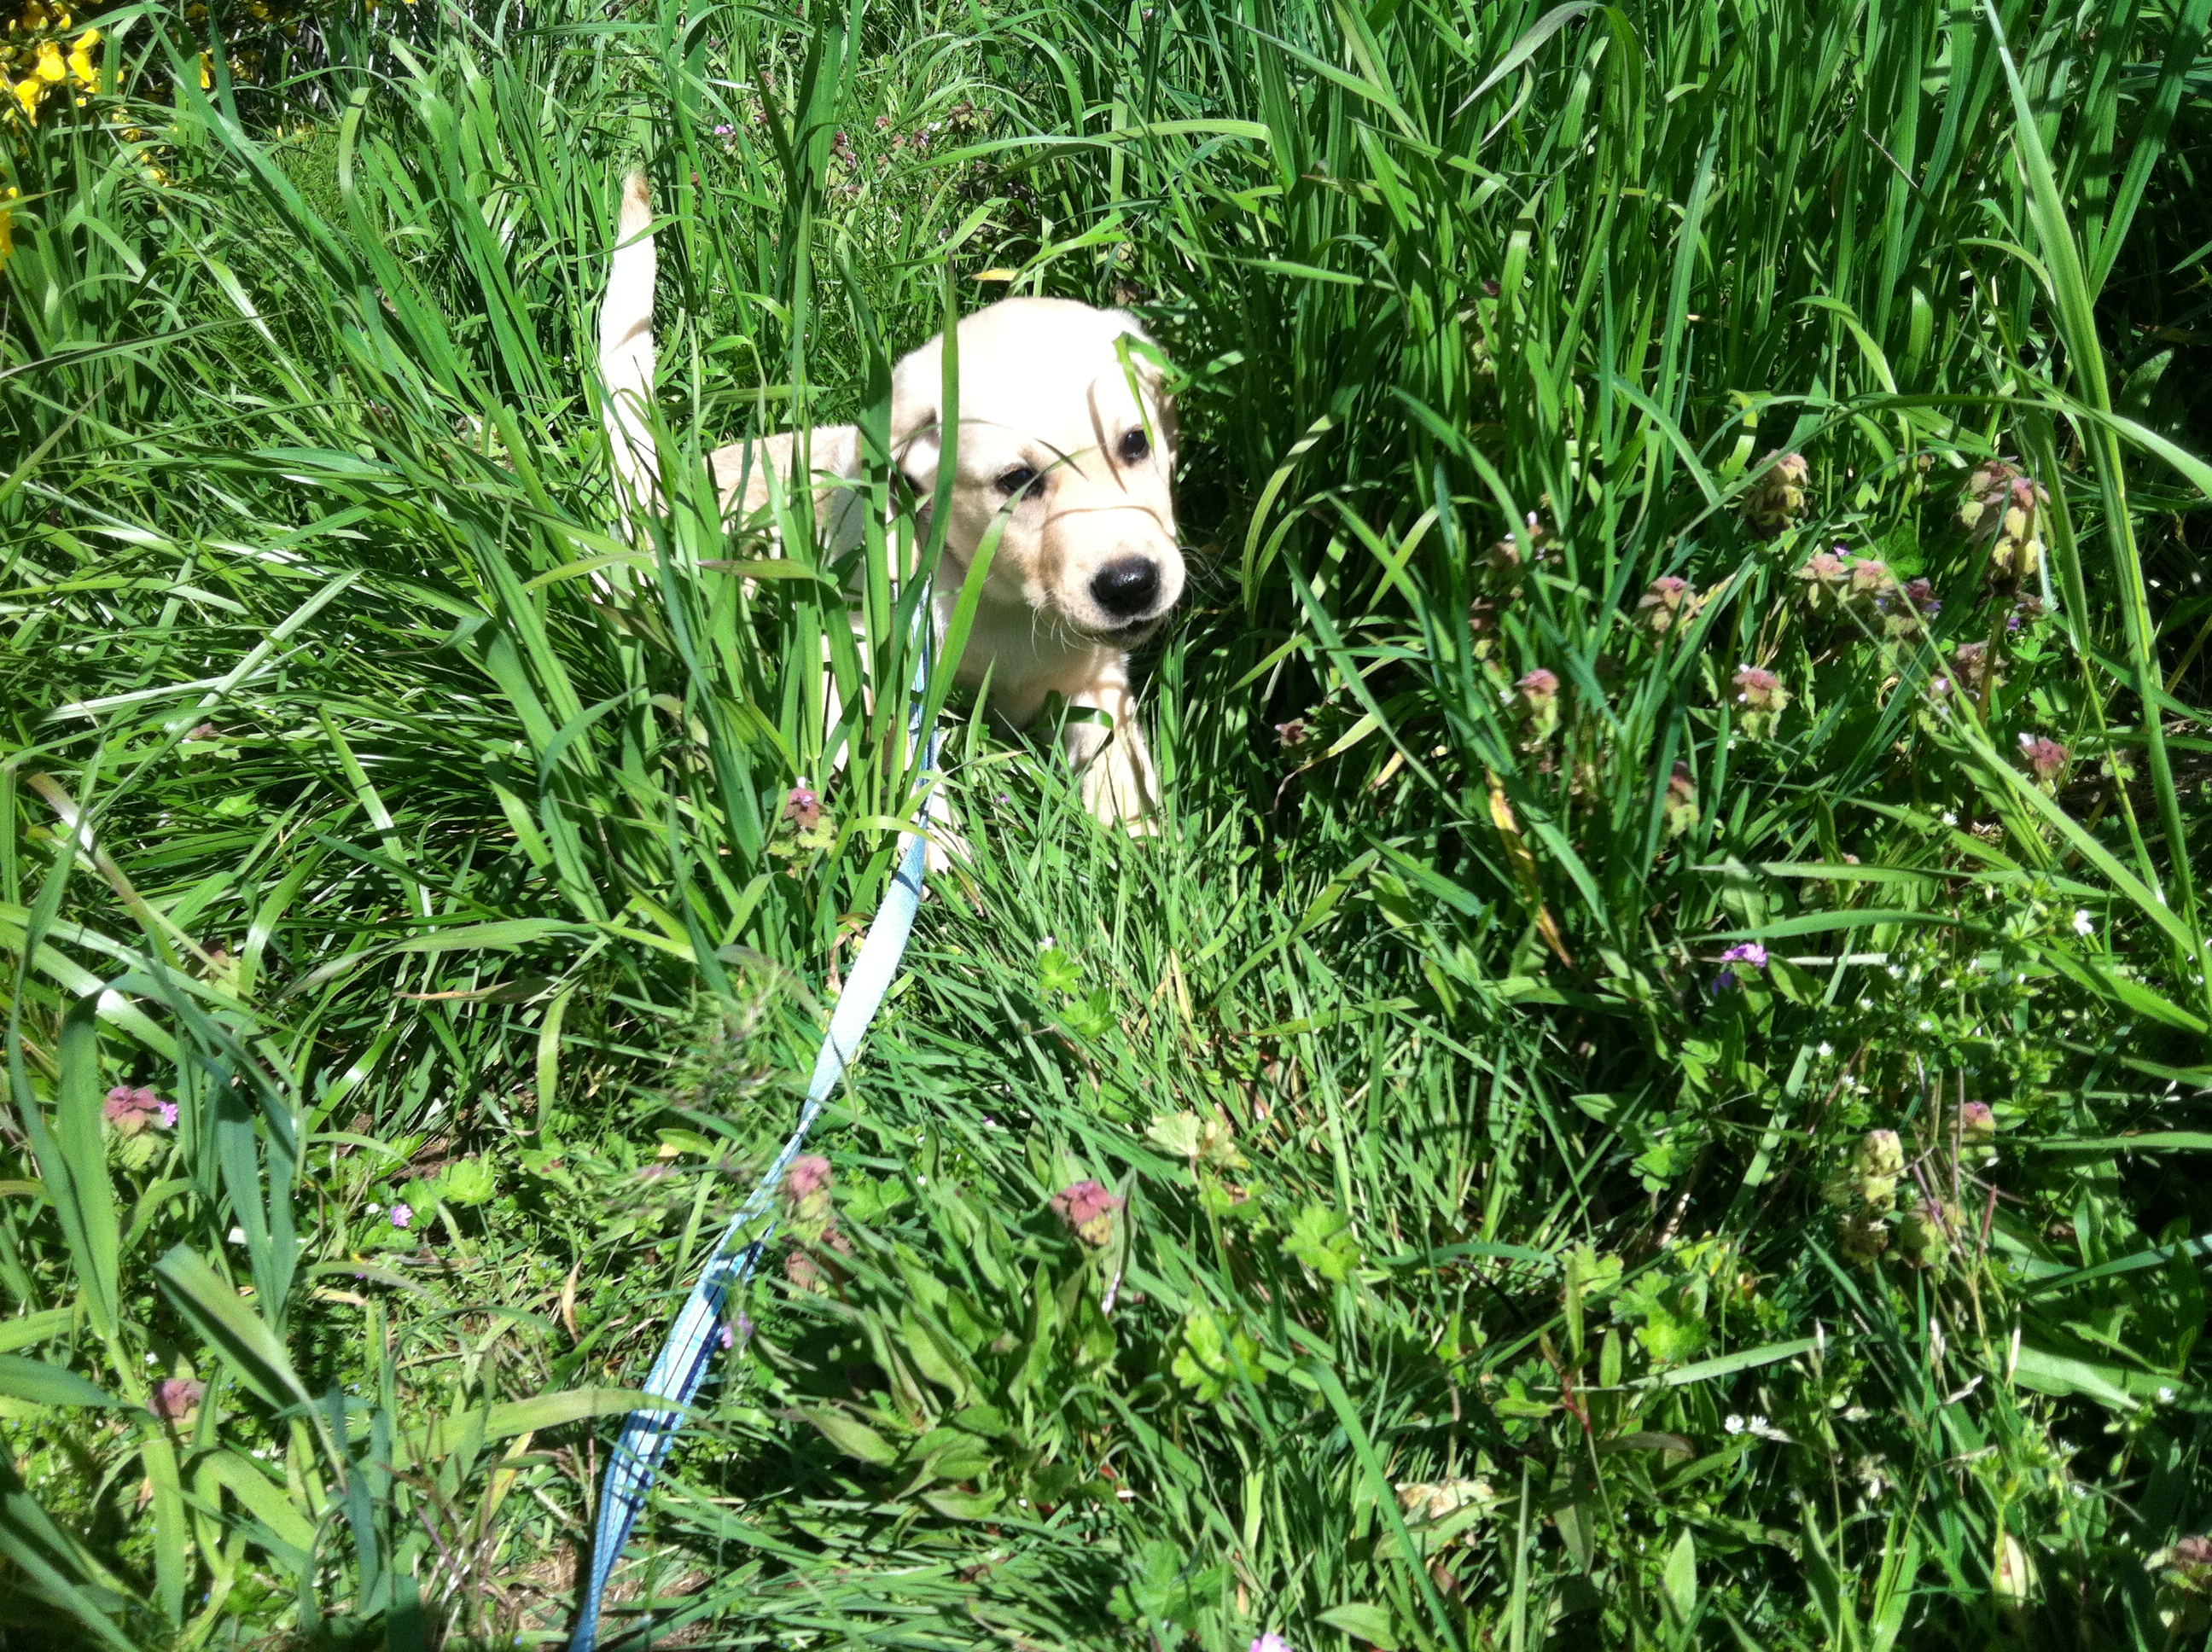 dog-vs-rug-blog---puppy-in-tall-grass.jpg